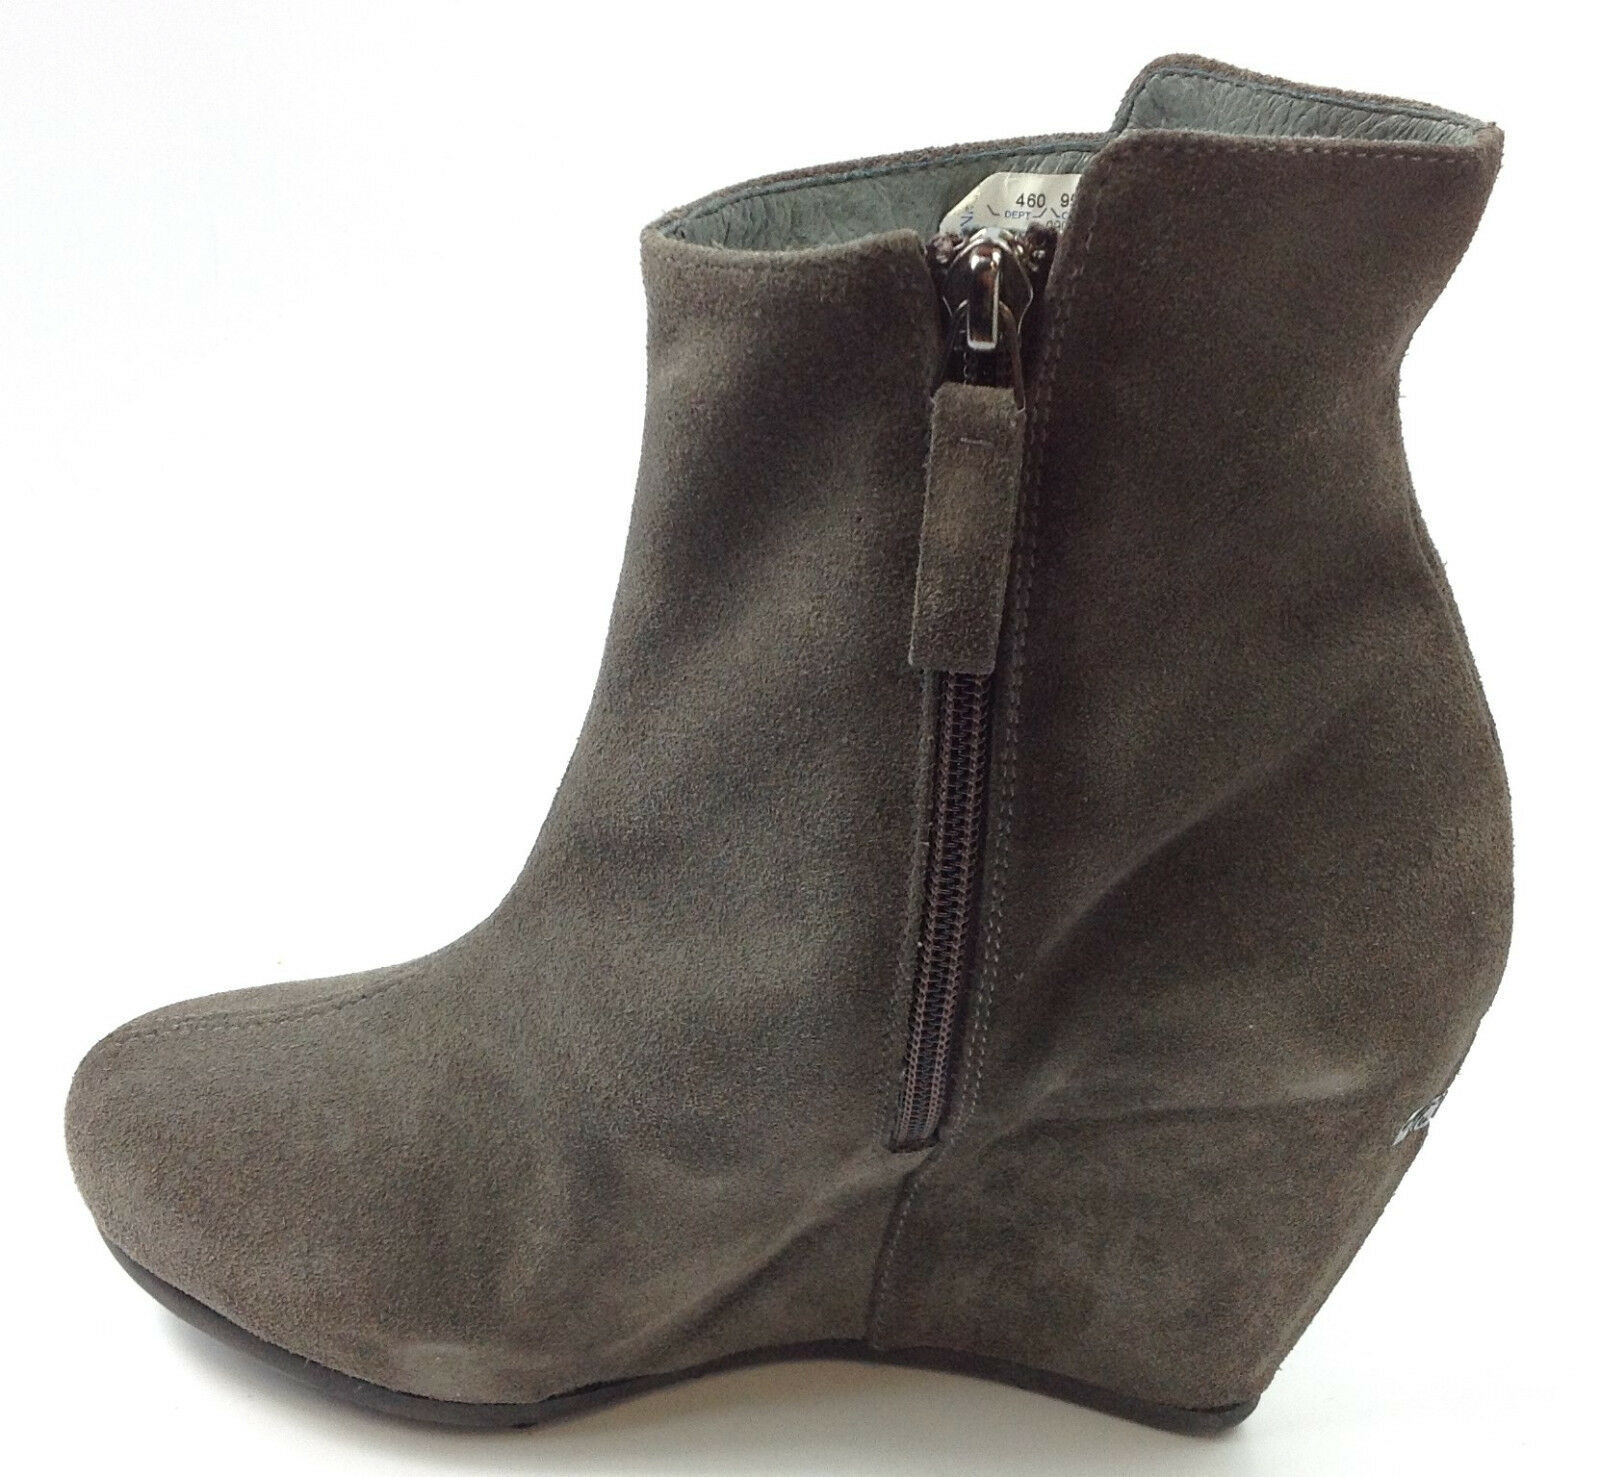 Costume National Suede Ankle Boots with wedges Eur 37-38 US 7 MSRP 385.00